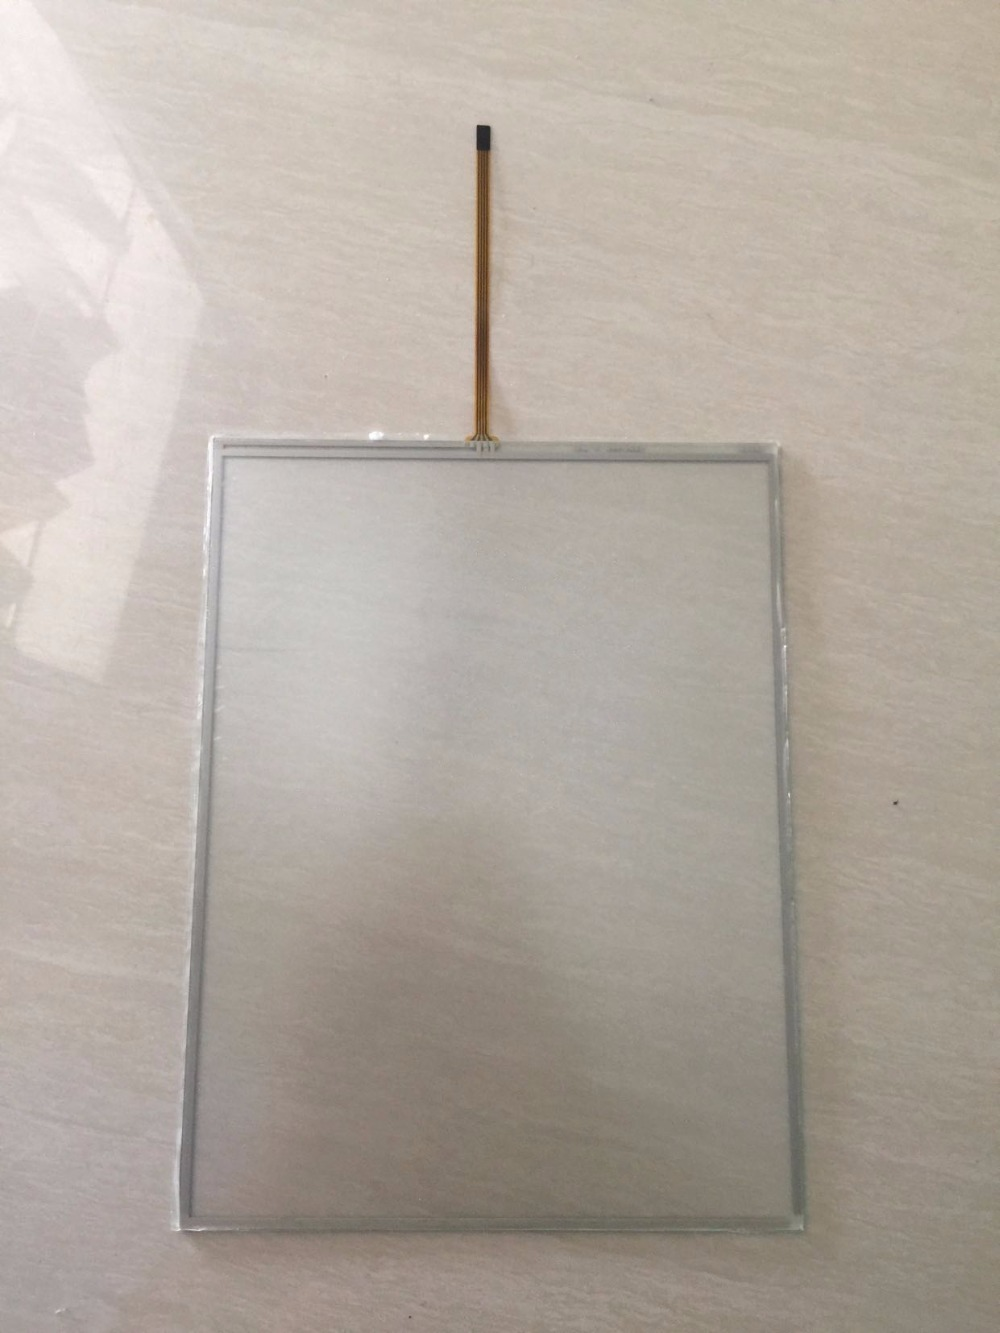 цена на For FANUC Series 310is-A A02B-0307-B621Touch screen